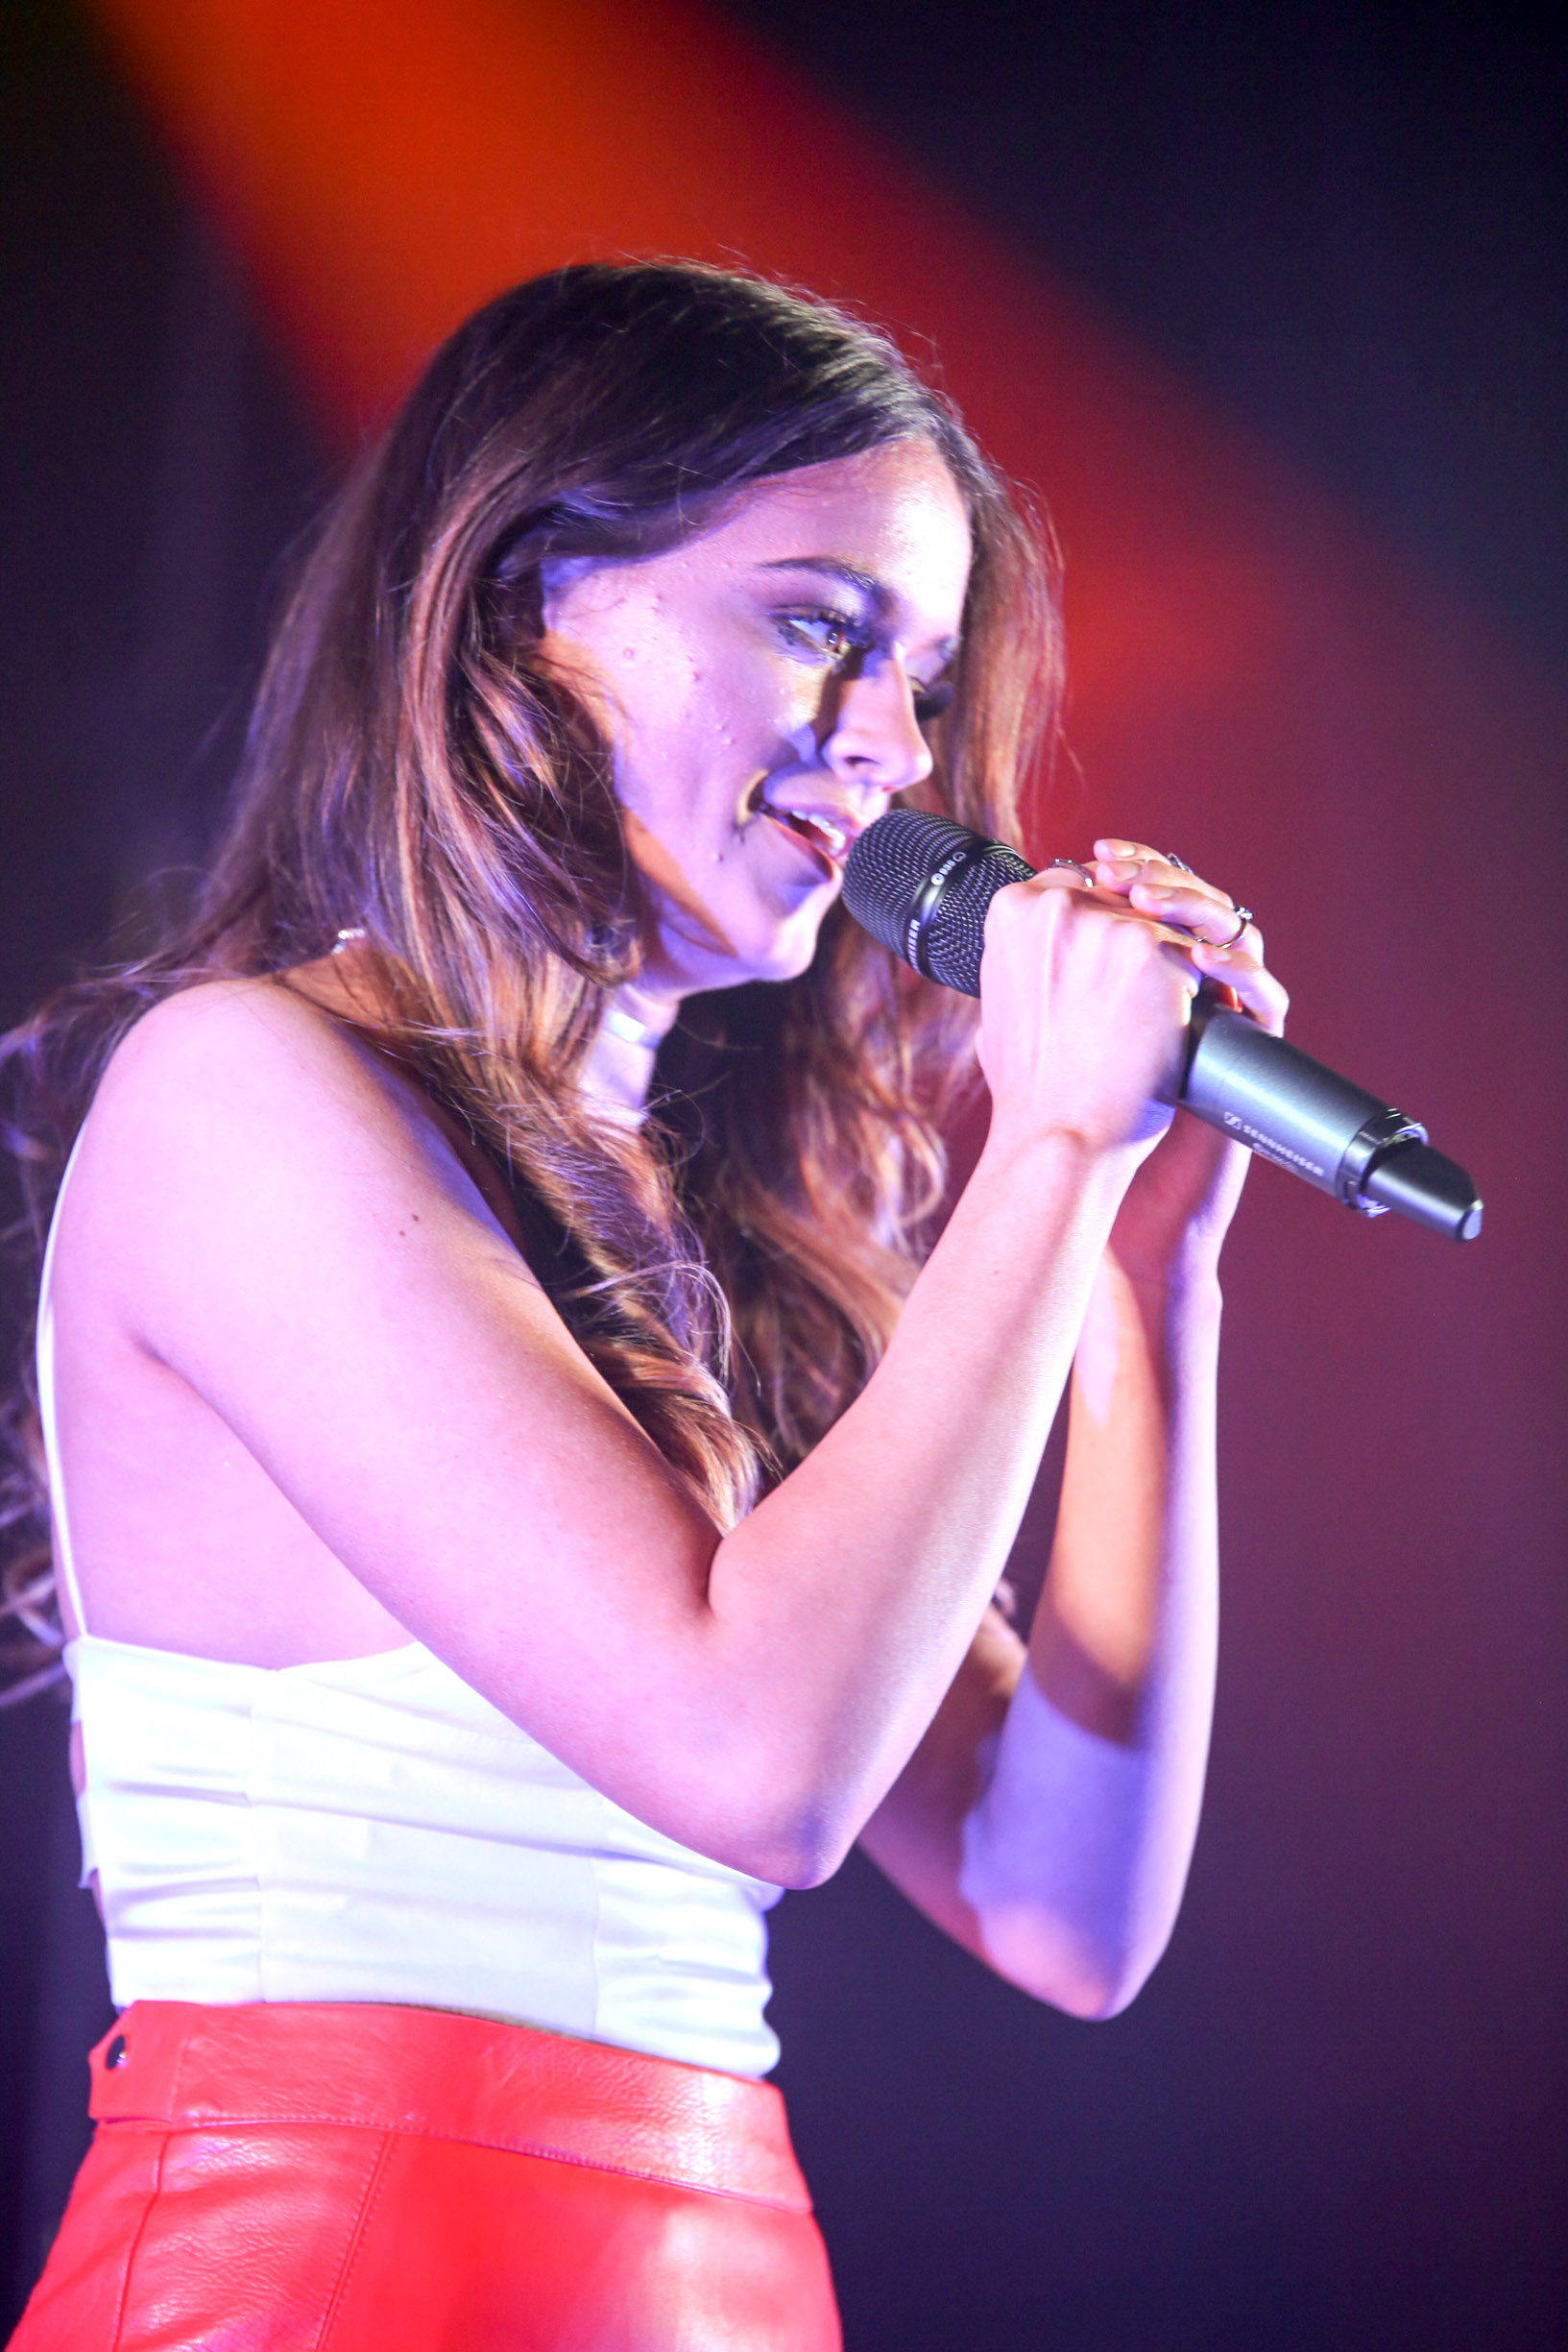 Emily Middlemas performing at Beyond The Lights